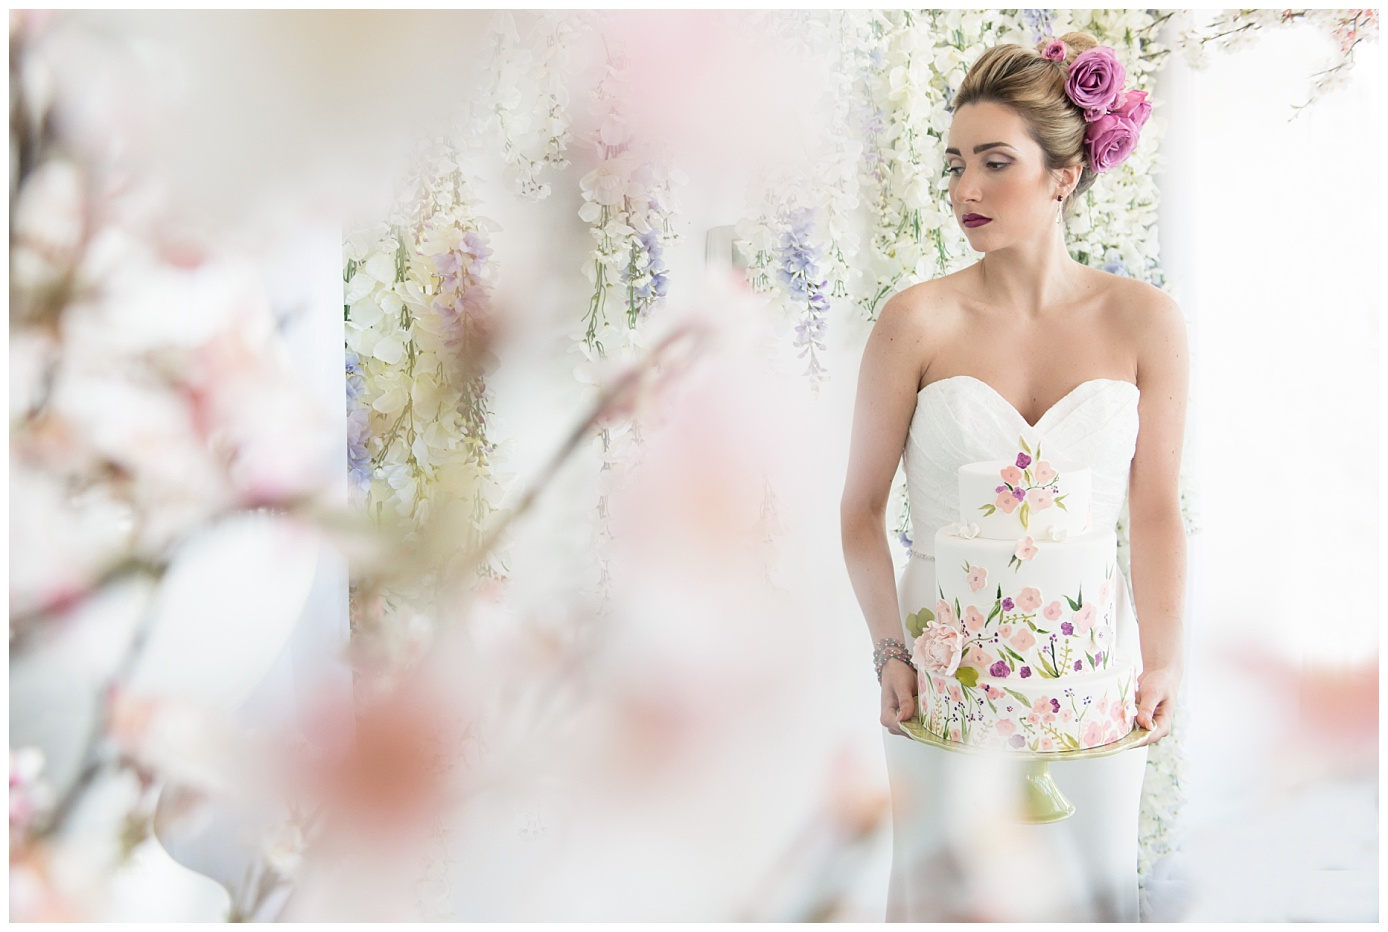 Wild Bloom, Styled Shoot, Lago, Ottawa styled shoot, wedding photography, Ottawa styled weddings